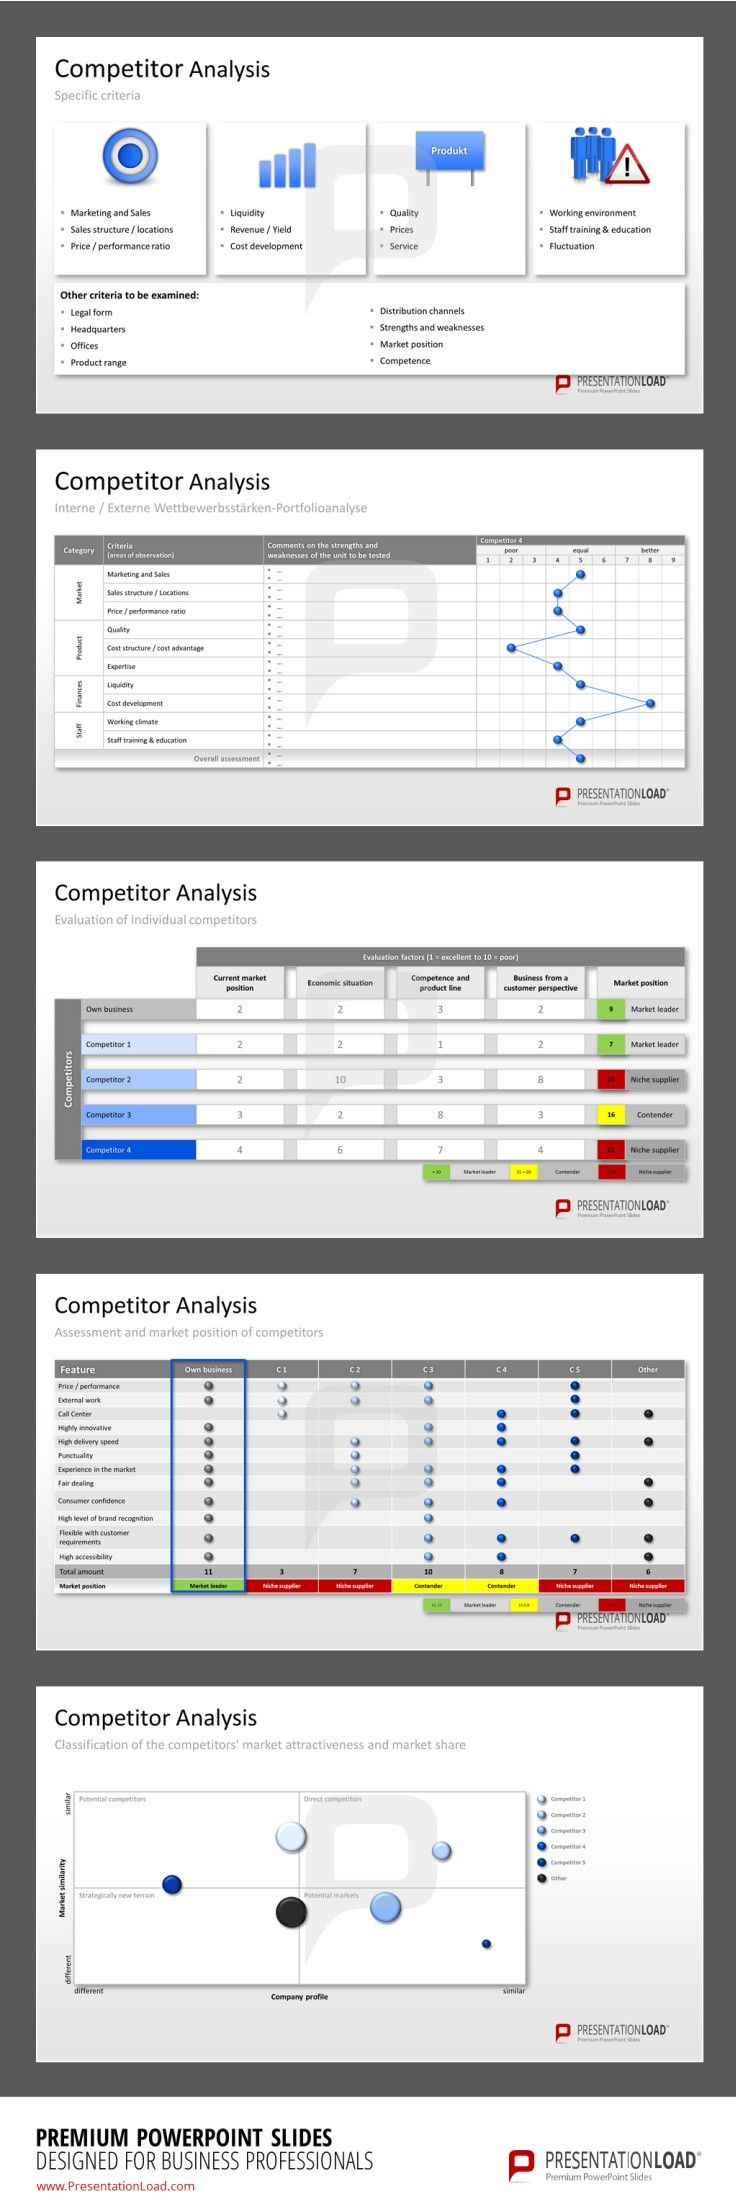 Competitor Analysis PowerPoint Templates Evaluate